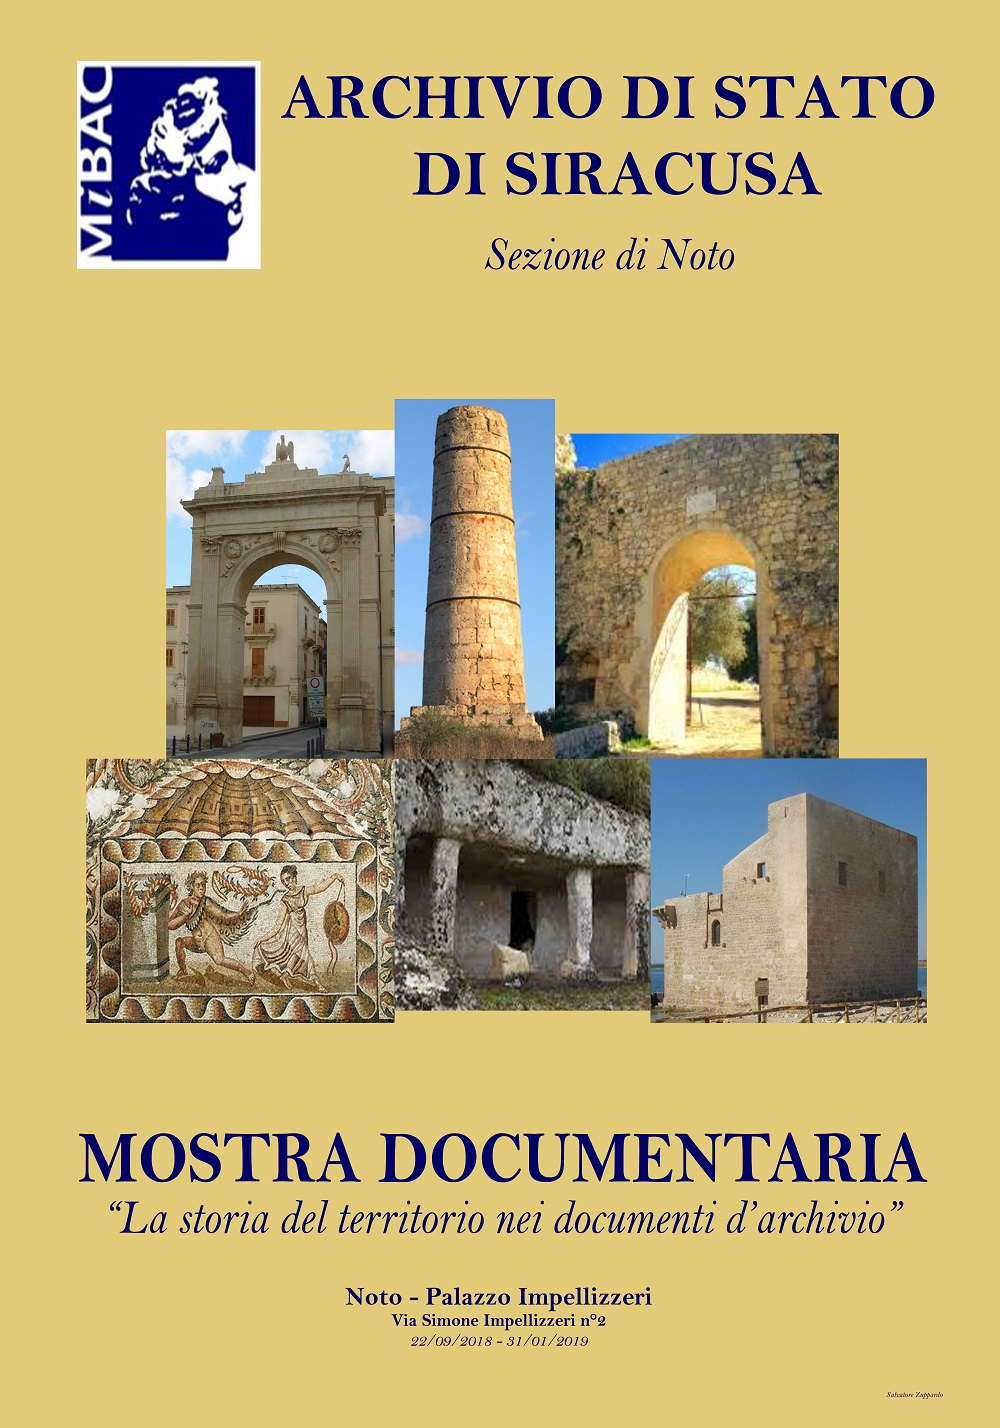 la-storia-del-territorio-nei-documenti-d'archivio---Copia